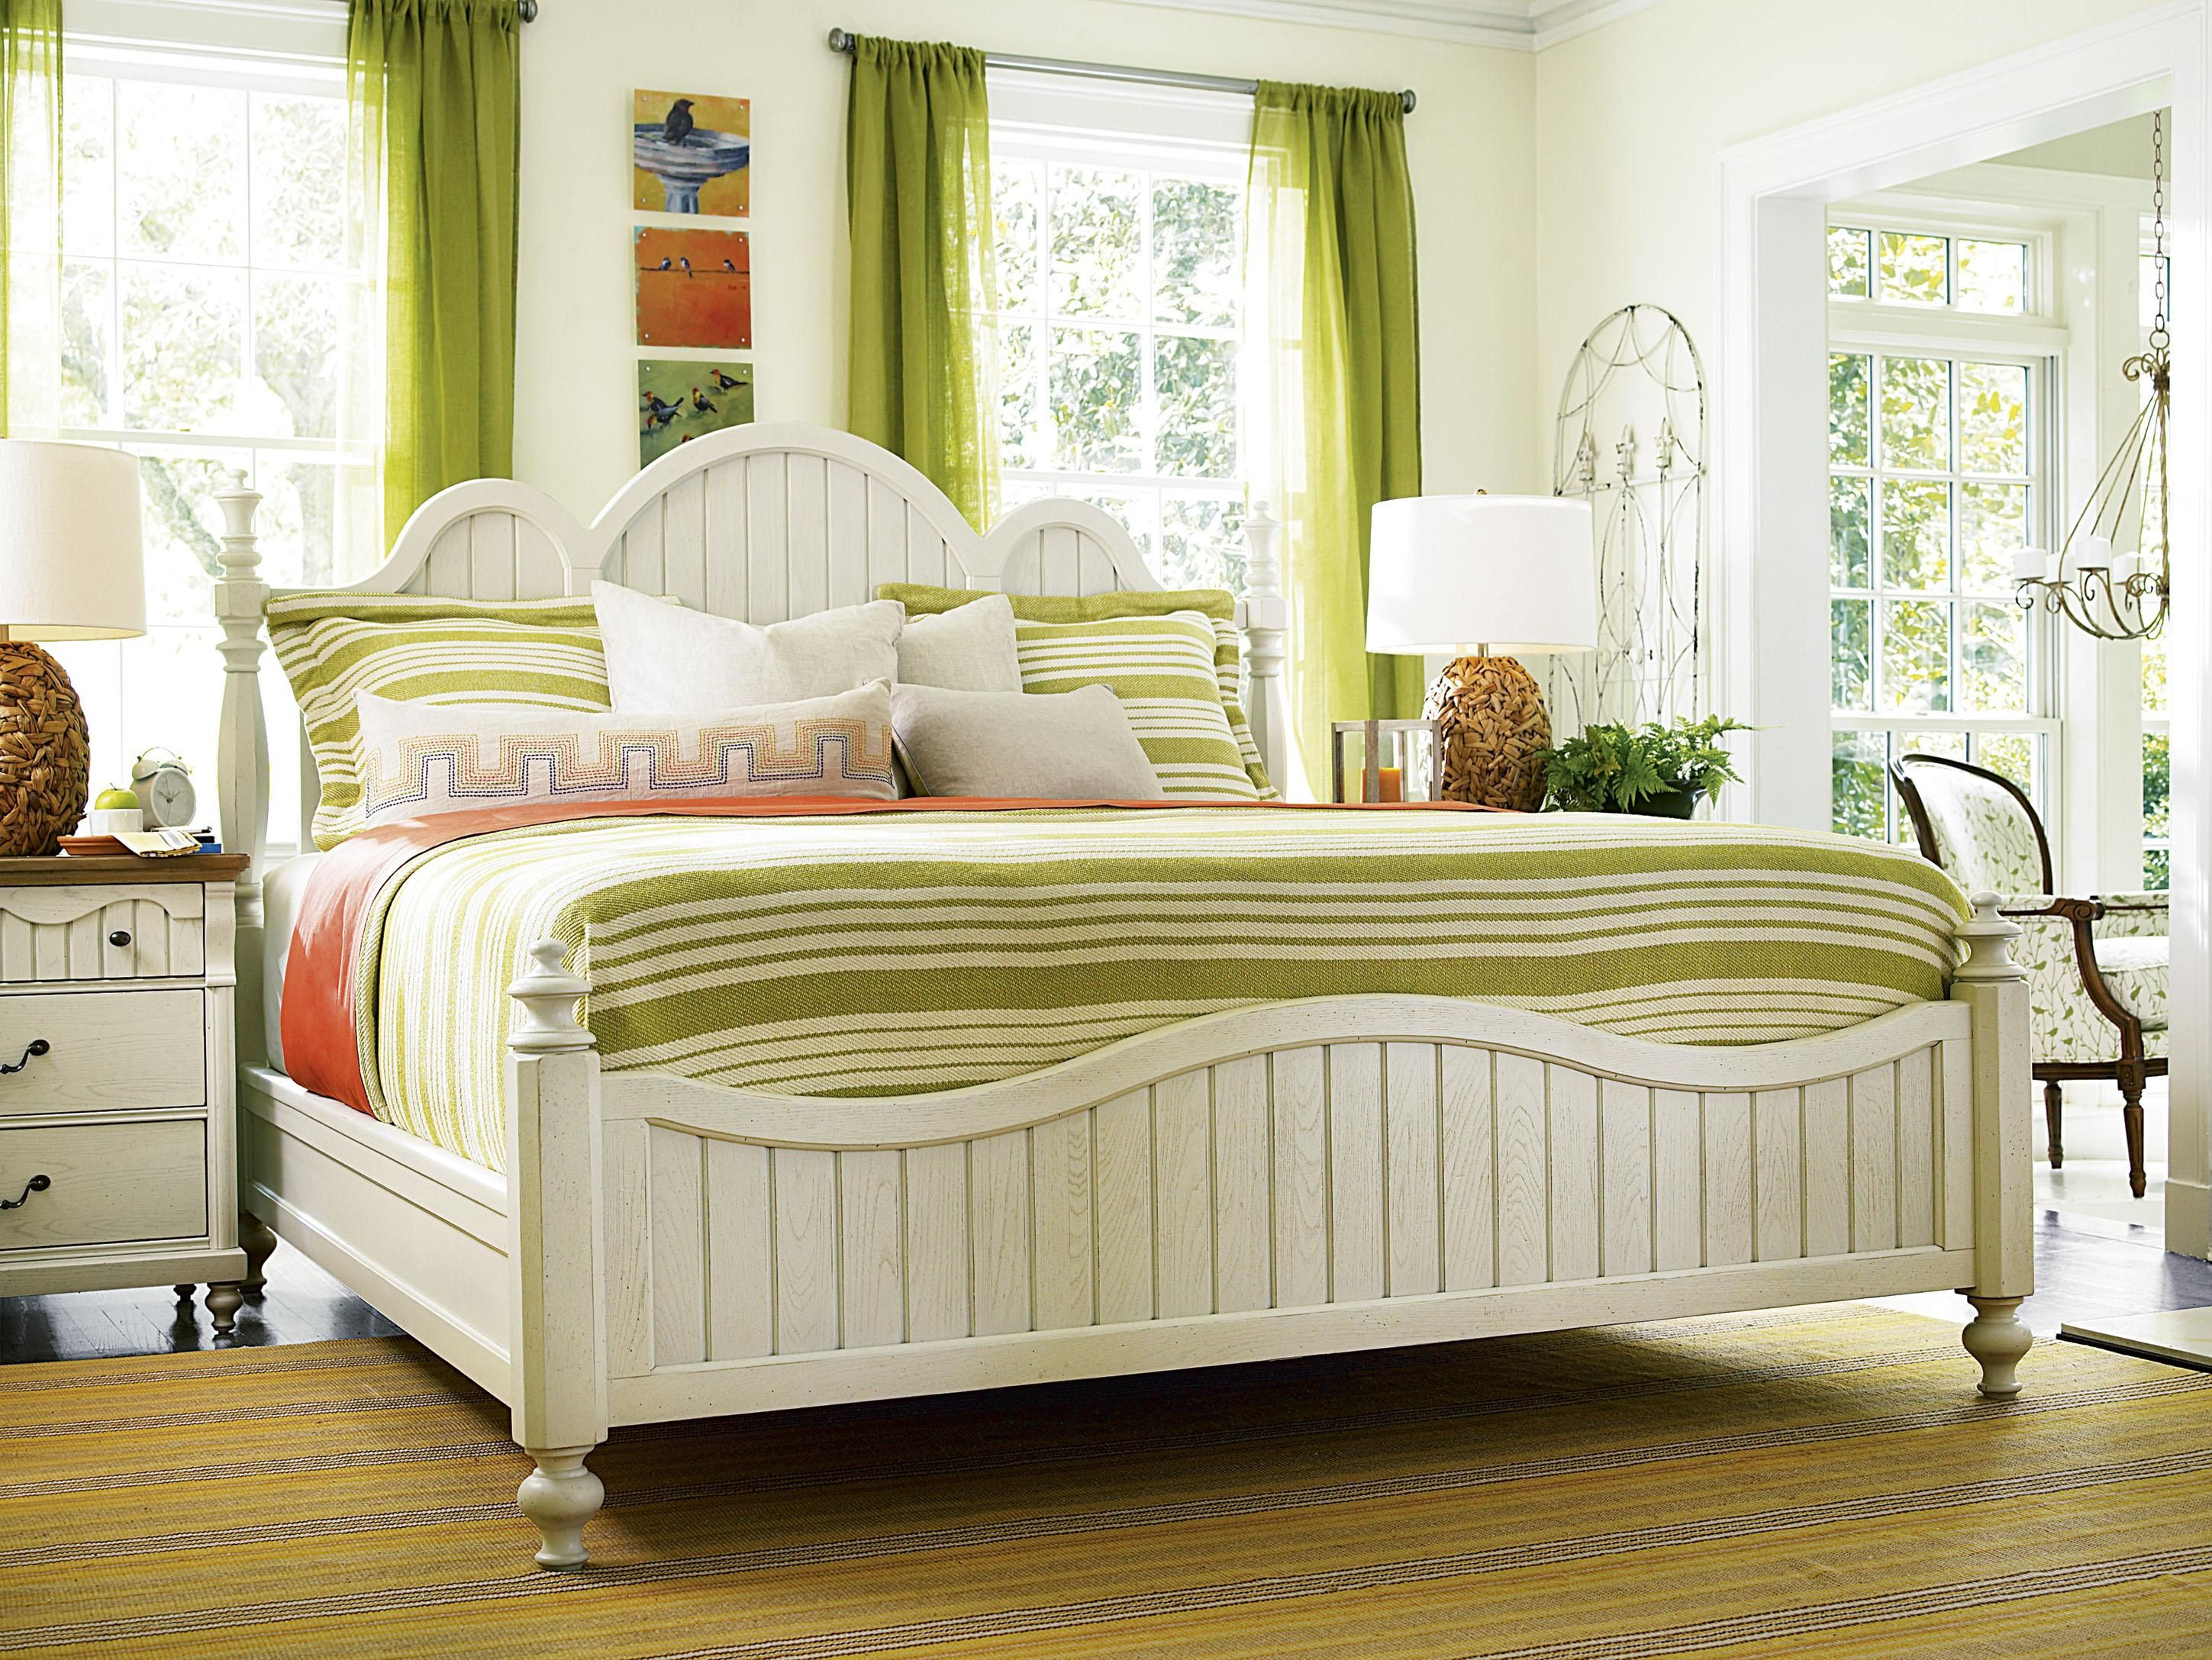 American Cottage King American Cottage Bed with Turned Finials by Better Homes and Gardens - AHFA - Headboard & Footboard Dealer Locator